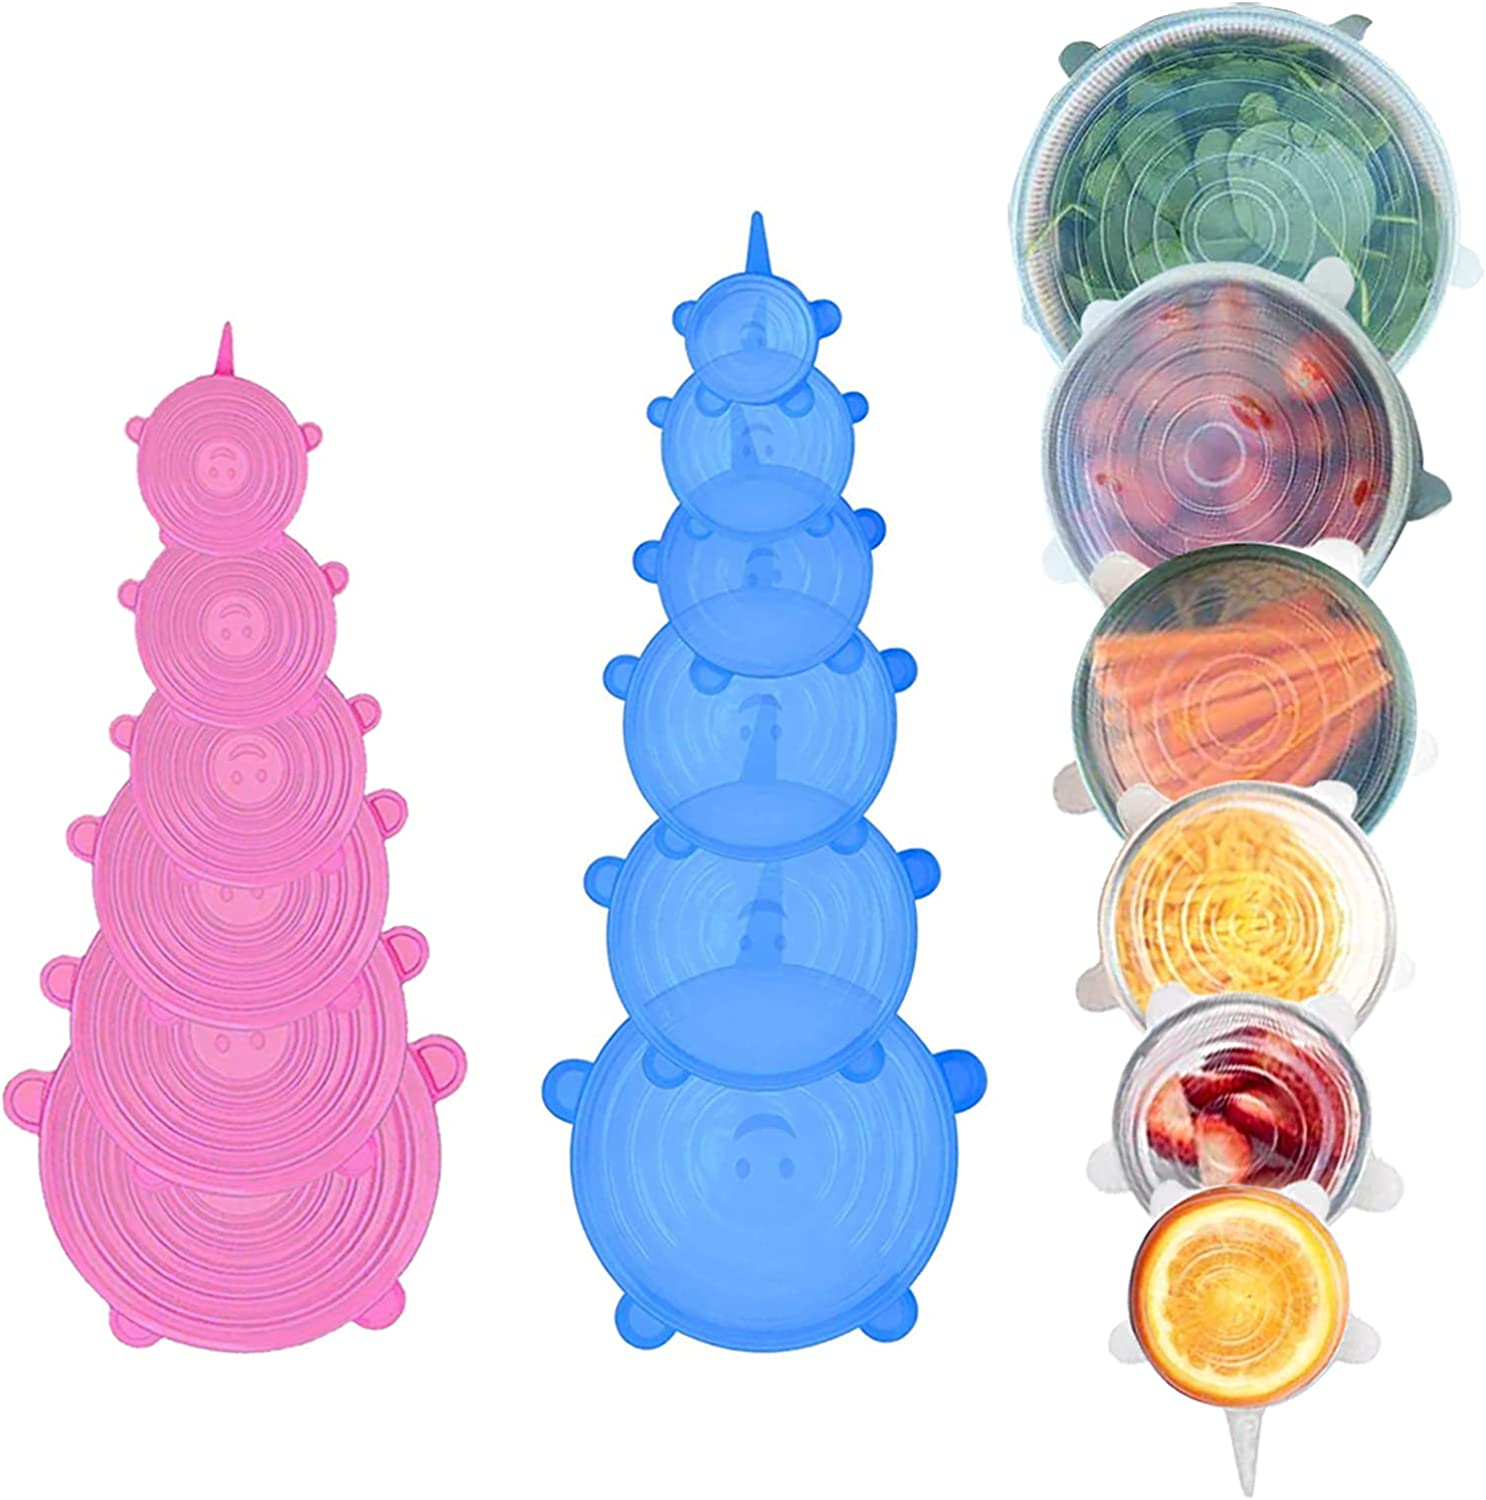 Blooding Silicone Stretch Lids, Reusable Silicone Lids 18 Pack Sustainable Bowl Covers, 6 Sizes Stretch and Seal Lids to Meet Most Containers for Freezer & Microwave